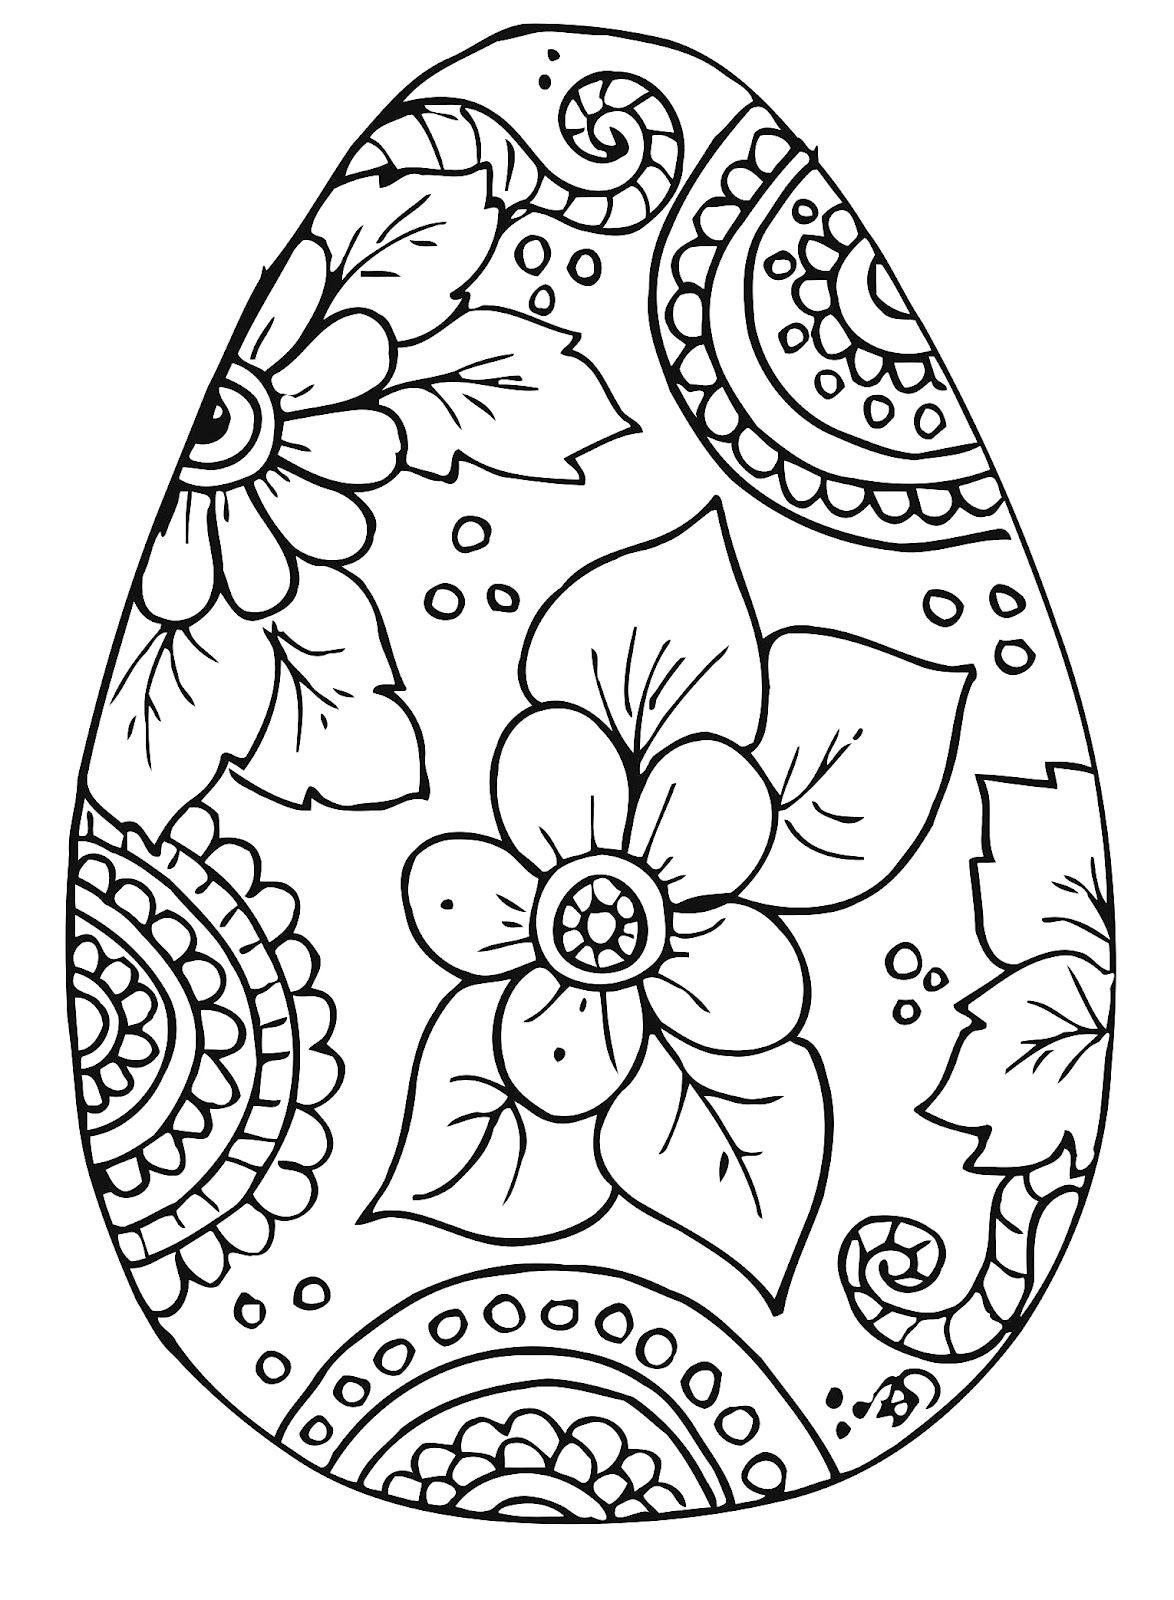 Designs Free Coloring Page Easter Kleurplaat Pasen  Egg Painting Patterns To Use For Painting Rocks